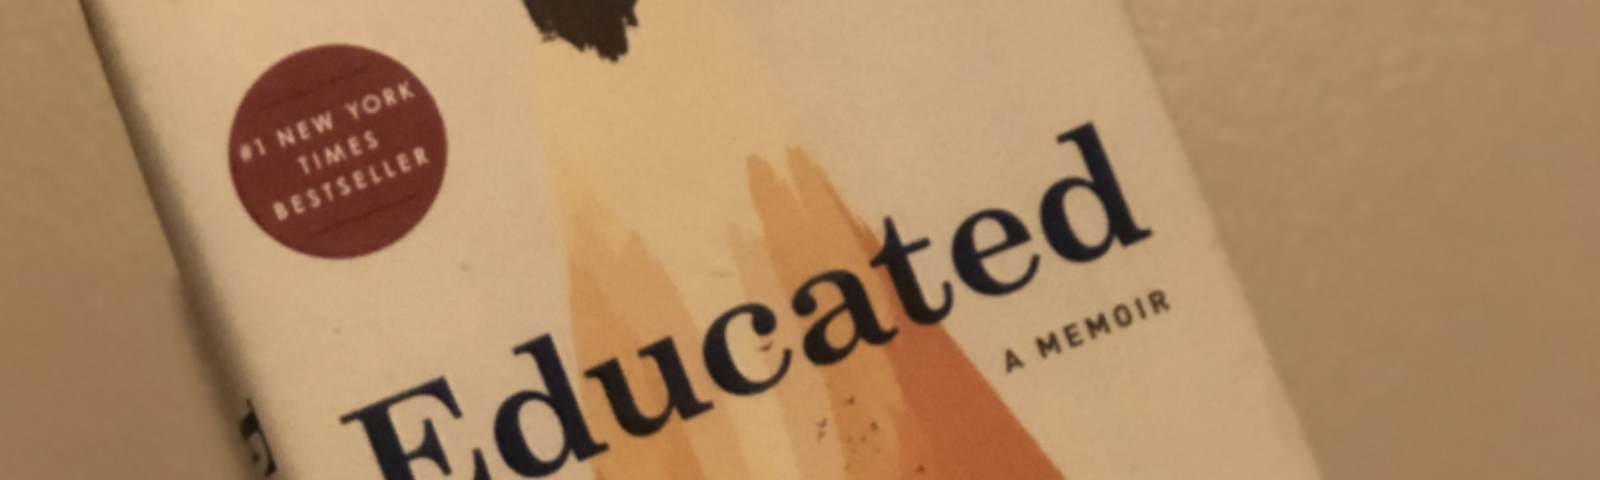 Hand holding up Educated by Tara Westover against a tan wall